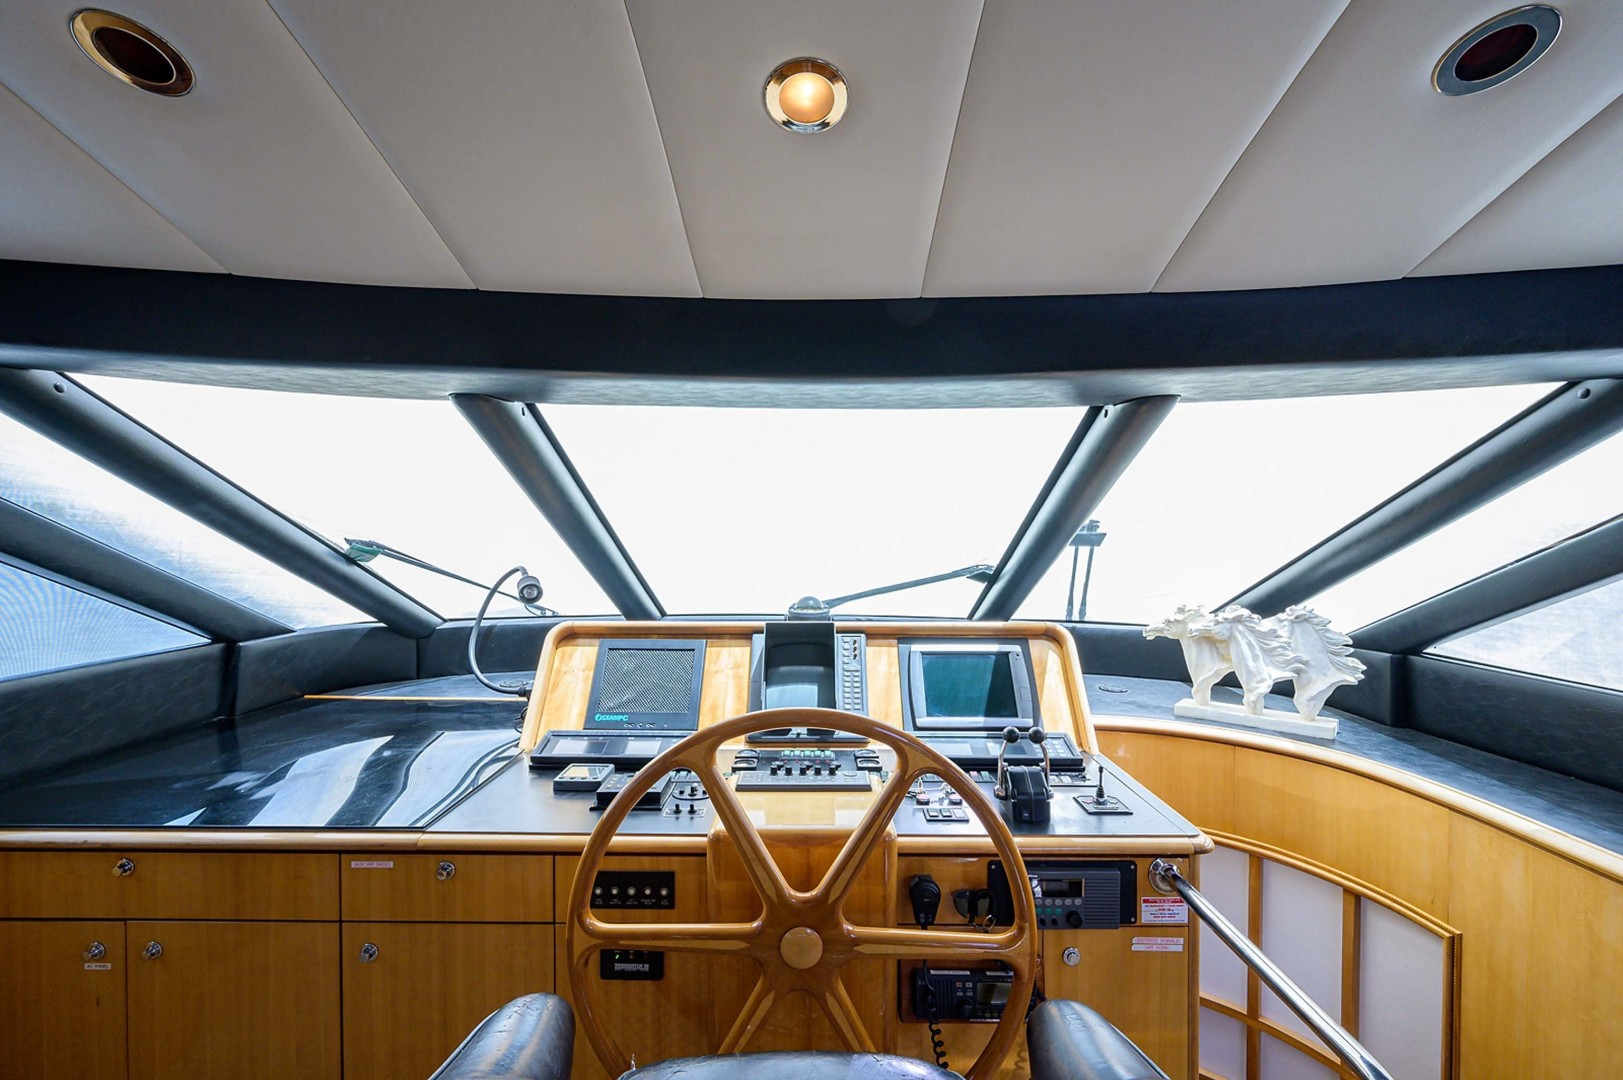 Queenship-Pilothouse Motor Yacht 1996-UNBRIDLED Stuart-Florida-United States-3-Windshield Wipers-1383272 | Thumbnail